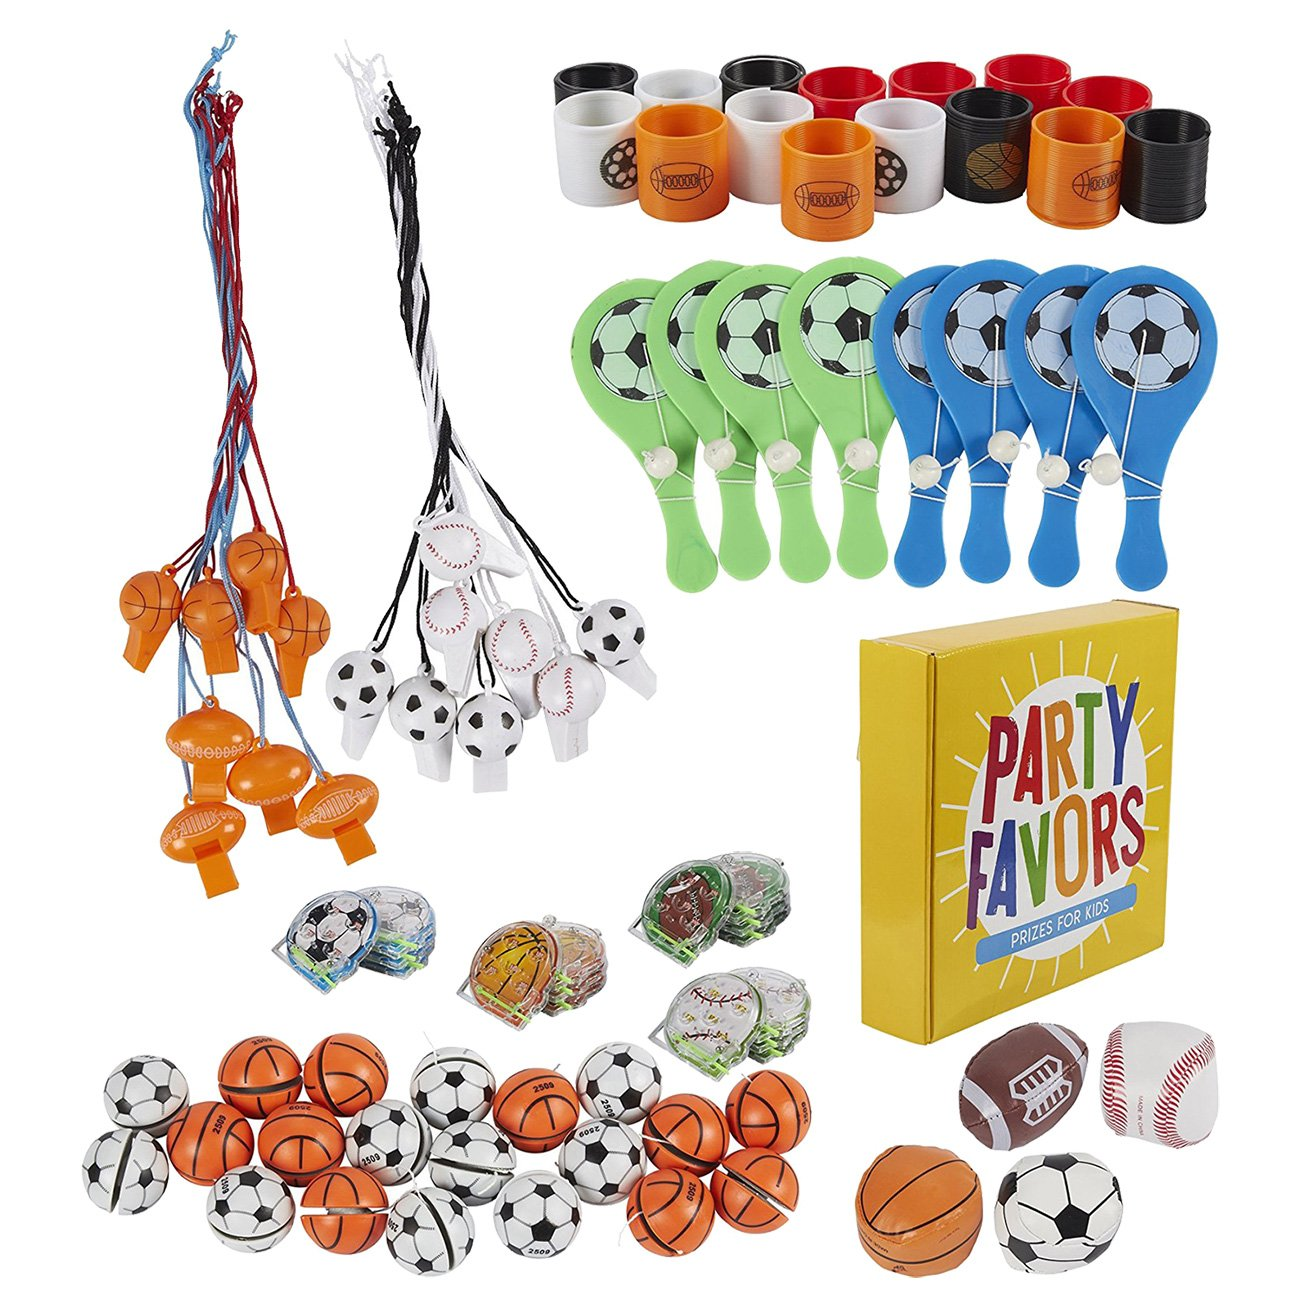 Prize Box Toys Assortment for Kids - 100-Piece Sports Themed Bulk Party Favor Treasure Chest Items for Classroom Rewards, Pinata Filler, Birthday Goodie Bags for Boys and Girls by Blue Panda